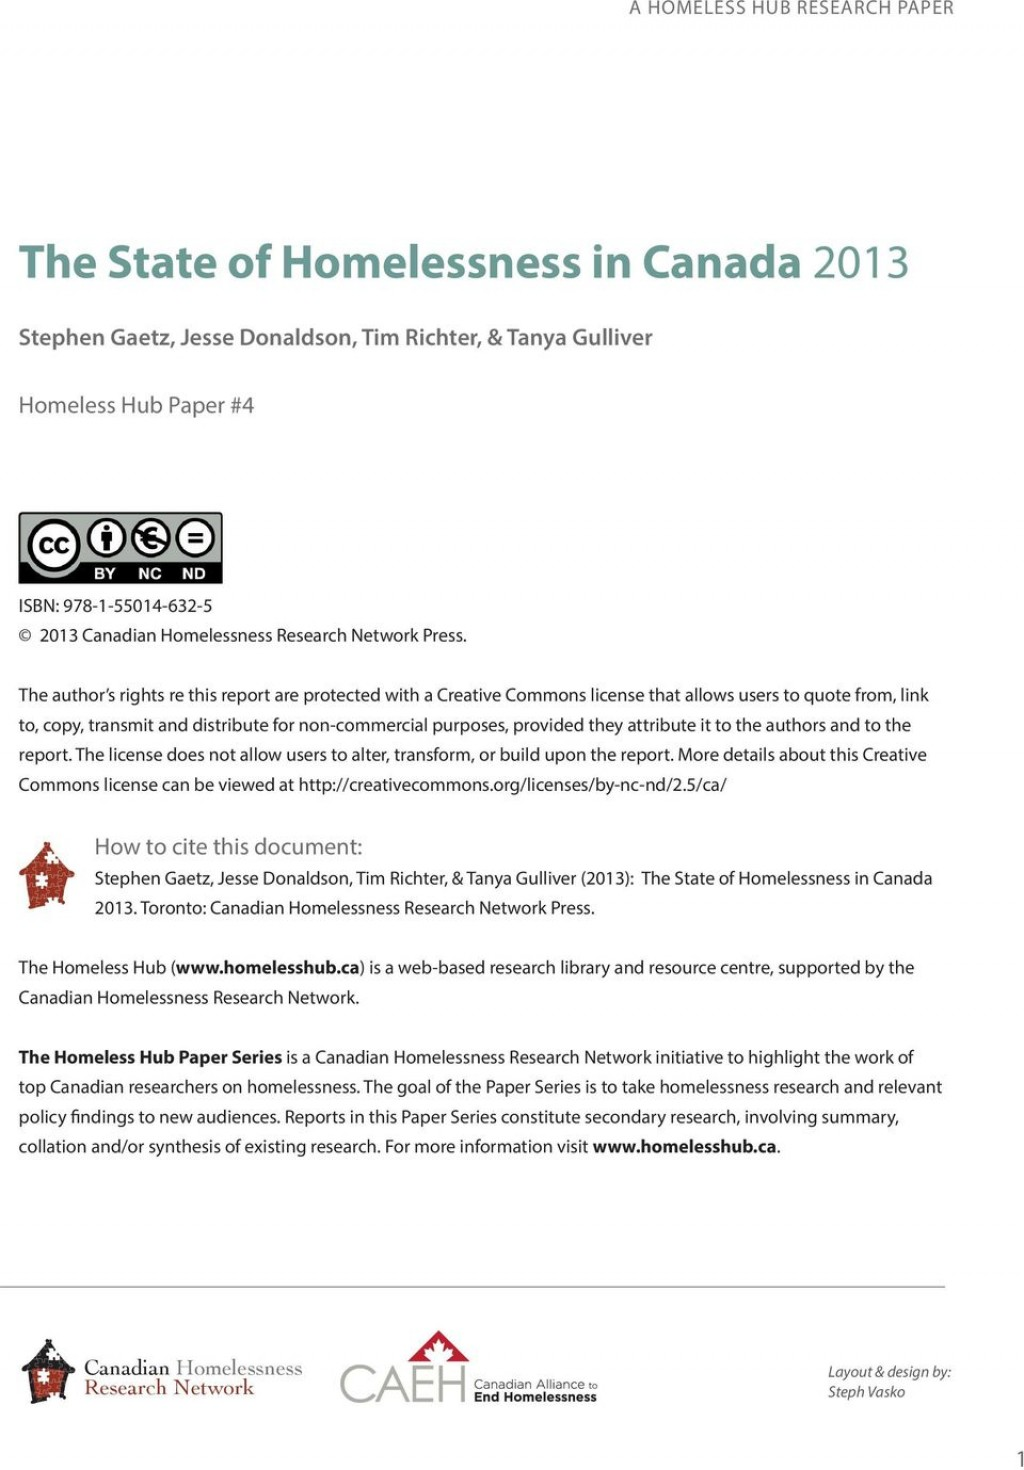 003 Page 2 Research Paper On Singular Homelessness Topics In America Papers And Mental Illness Large